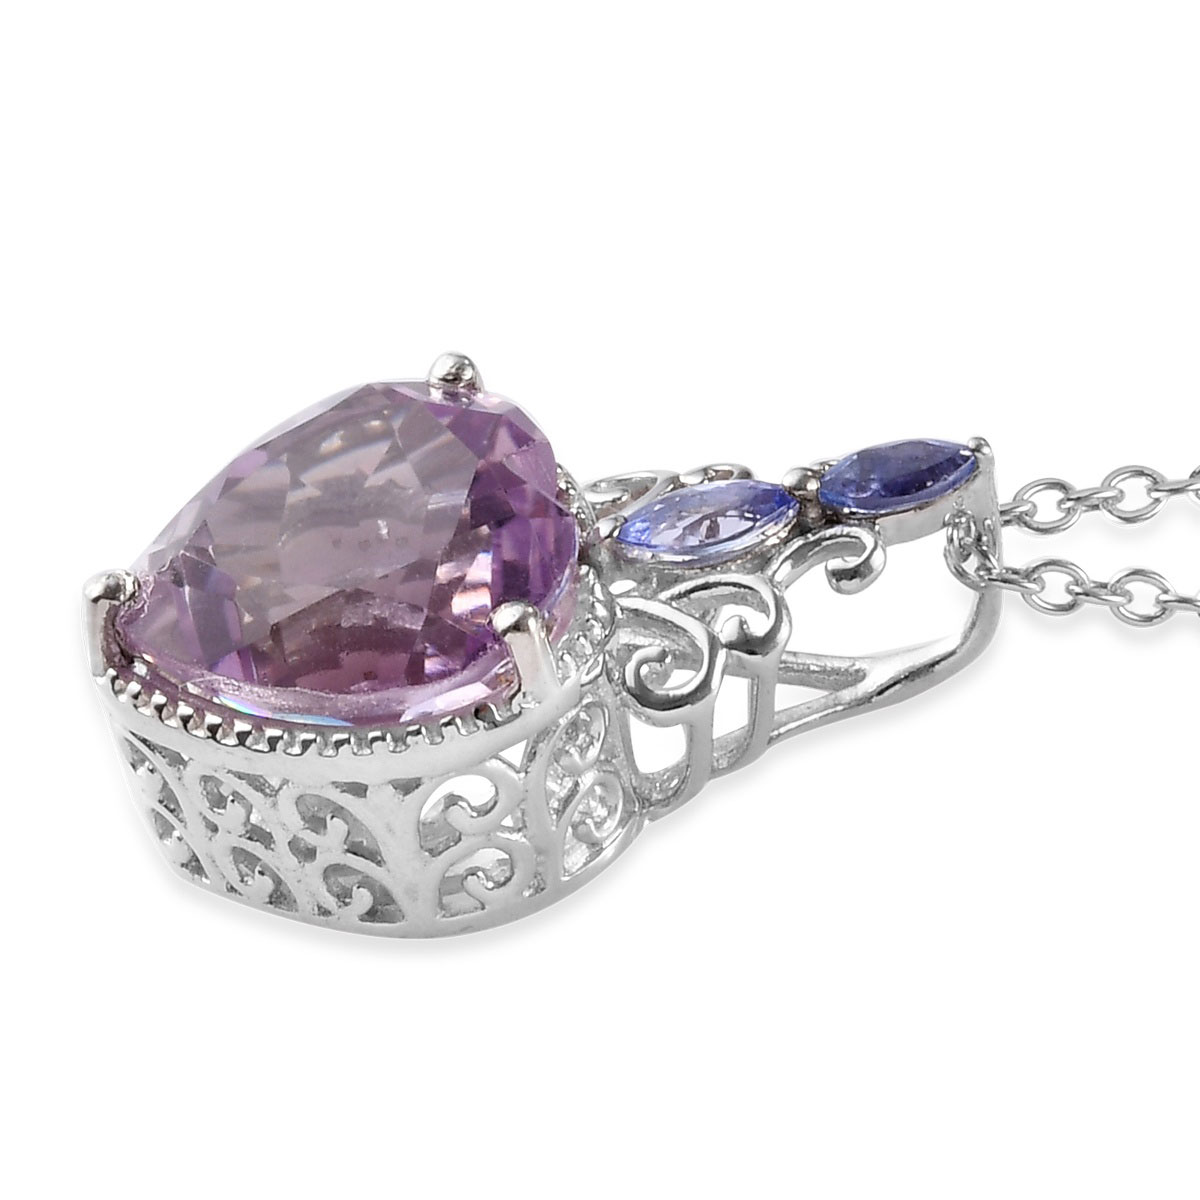 Rose De France Amethyst, Tanzanite Platinum Over Sterling Silver Pendant With Chain (20 in) TGW 5.65 cts.